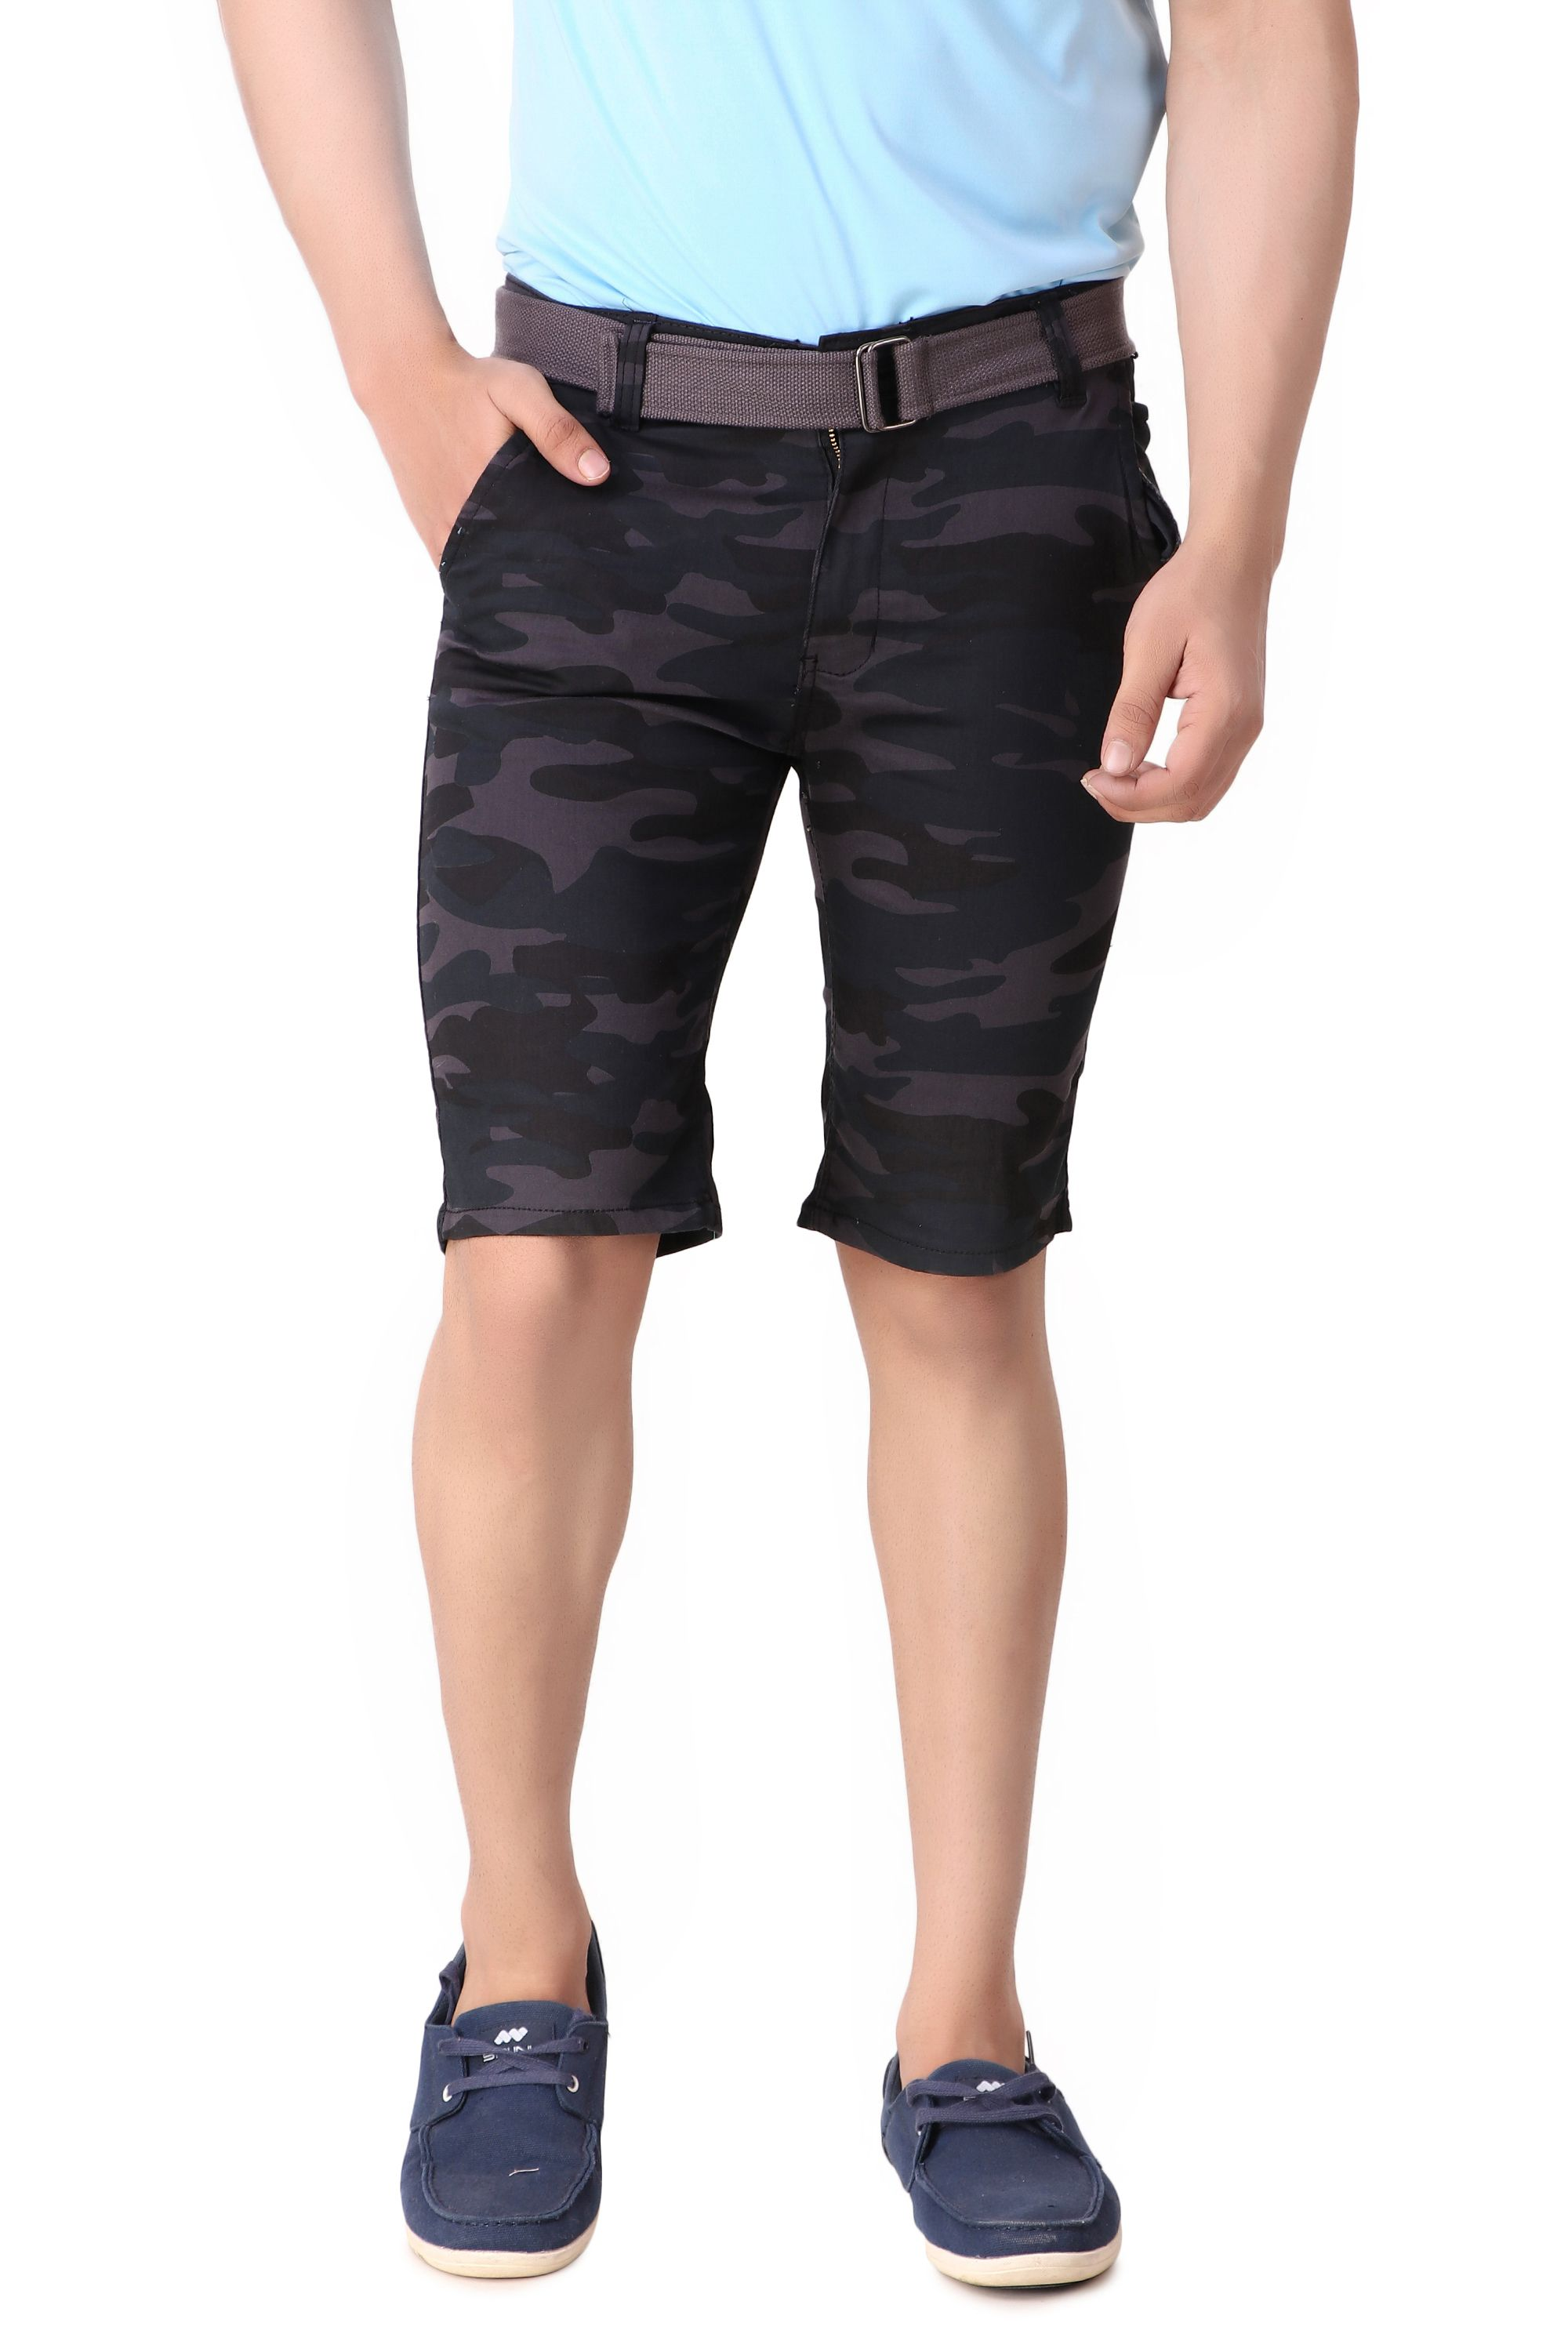 Verticals Army Stretchable Shorts for Men and Boys